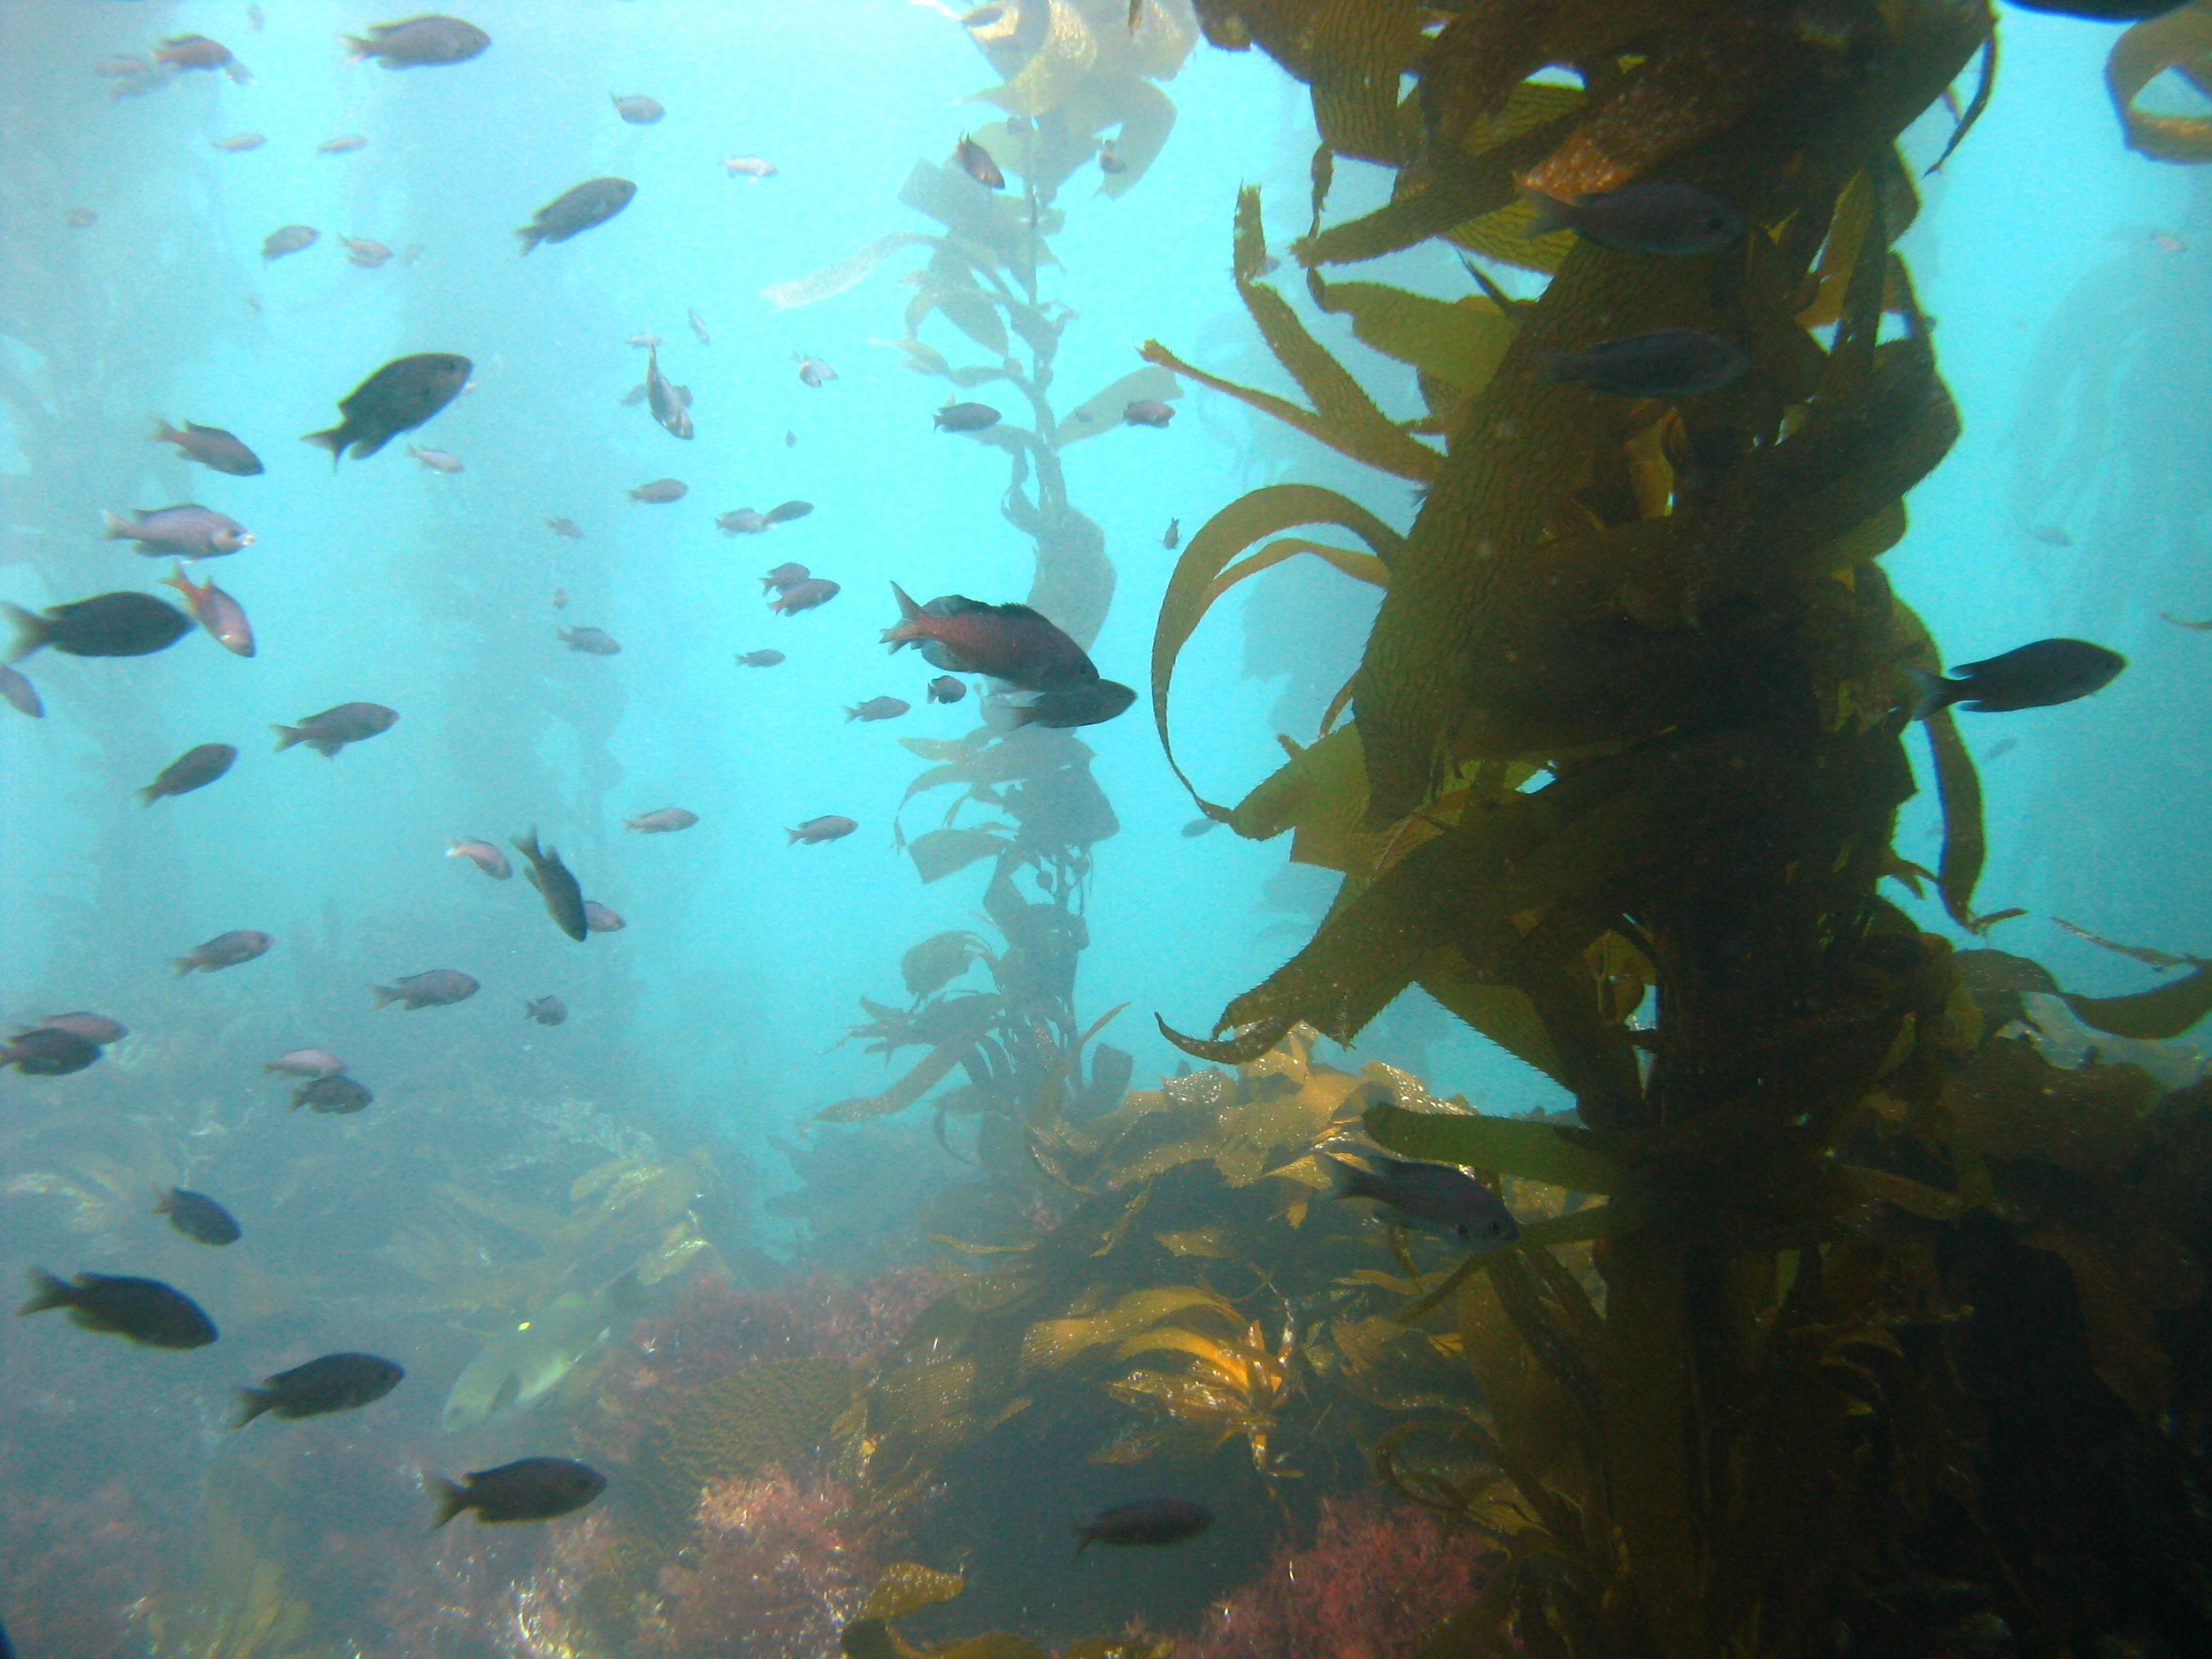 Like in Alaska, kelp forests in California provide habitat and shelter for a variety of fish species. Photo courtesy Sonia Ibarra.